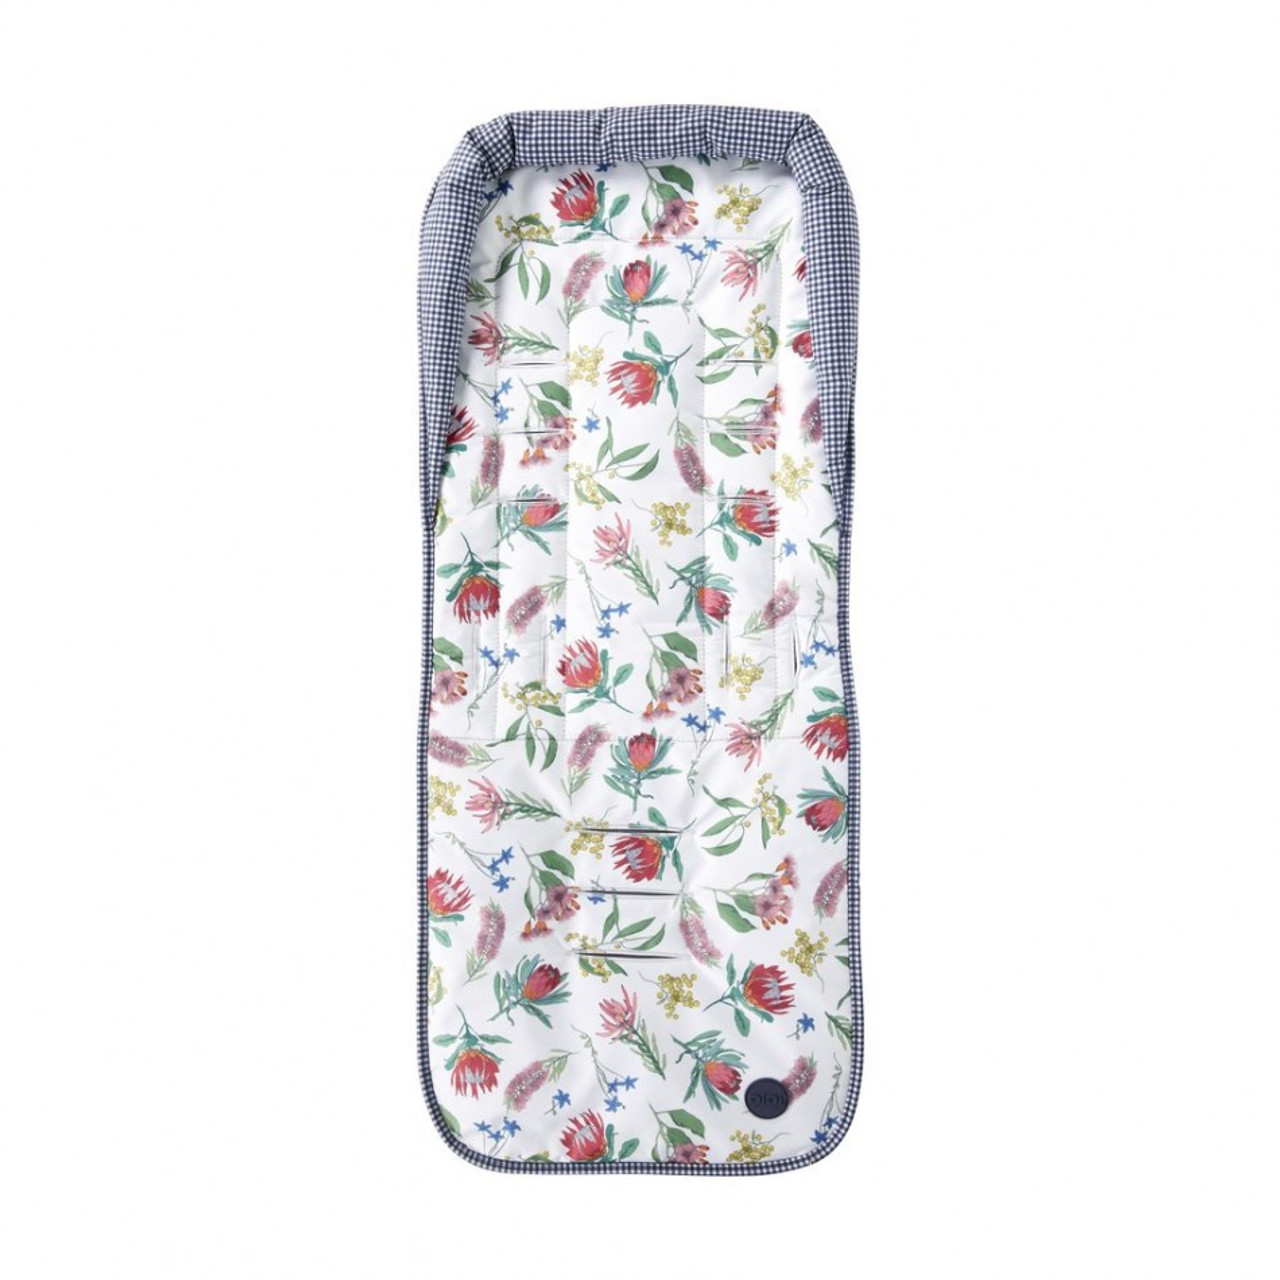 OiOi Reversible Botanical Seat Liner - Navy/ White Gingham at Baby Barn Discounts Oioi reversible pram liner that features Australian botanical prints.